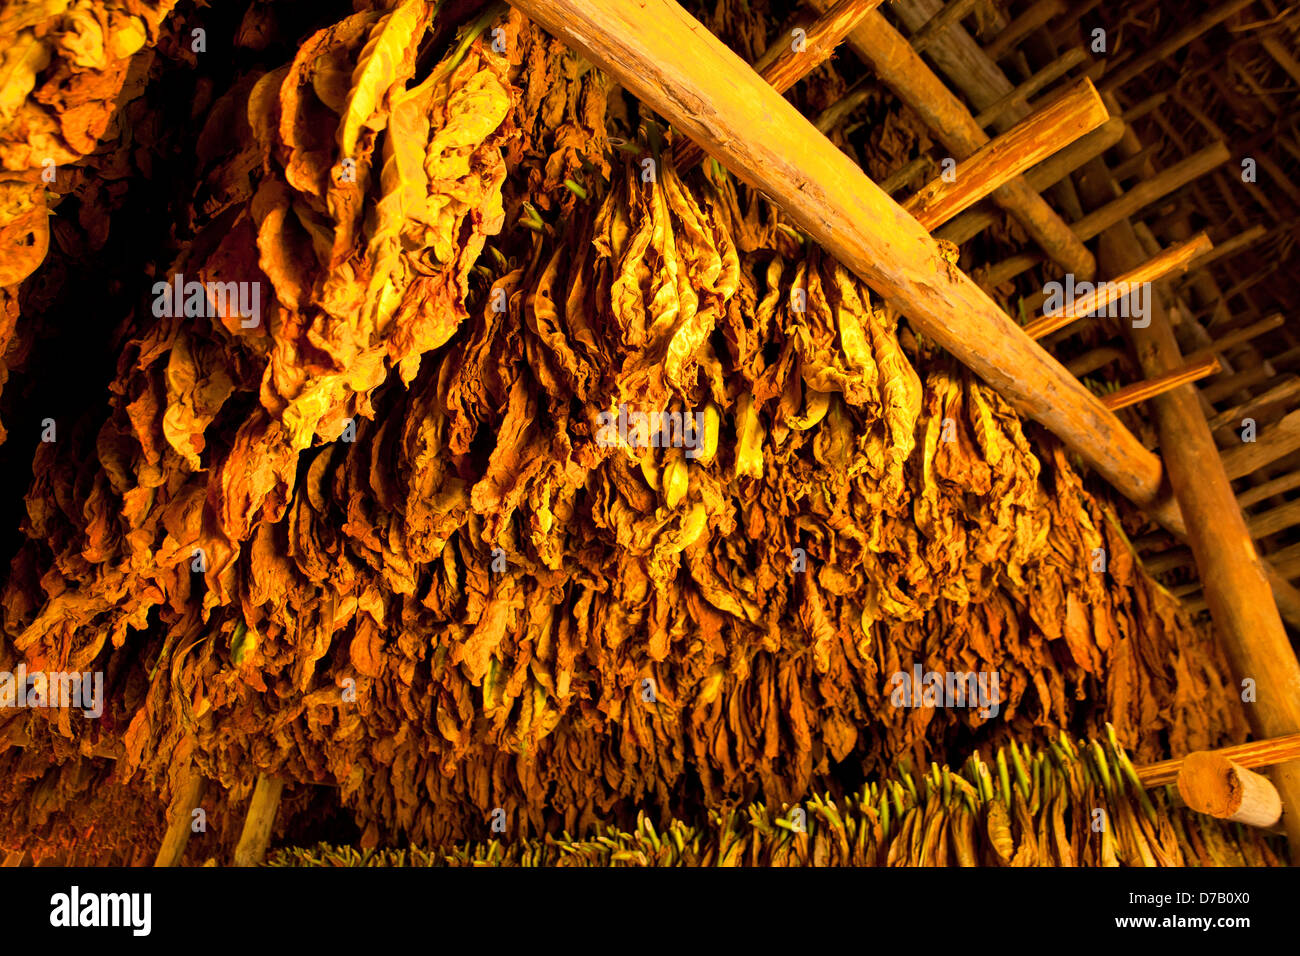 tobacco leaves drying in a Barn in the Vinales Valley, Vinales, Pinar del Rio, Cuba, Caribbean - Stock Image